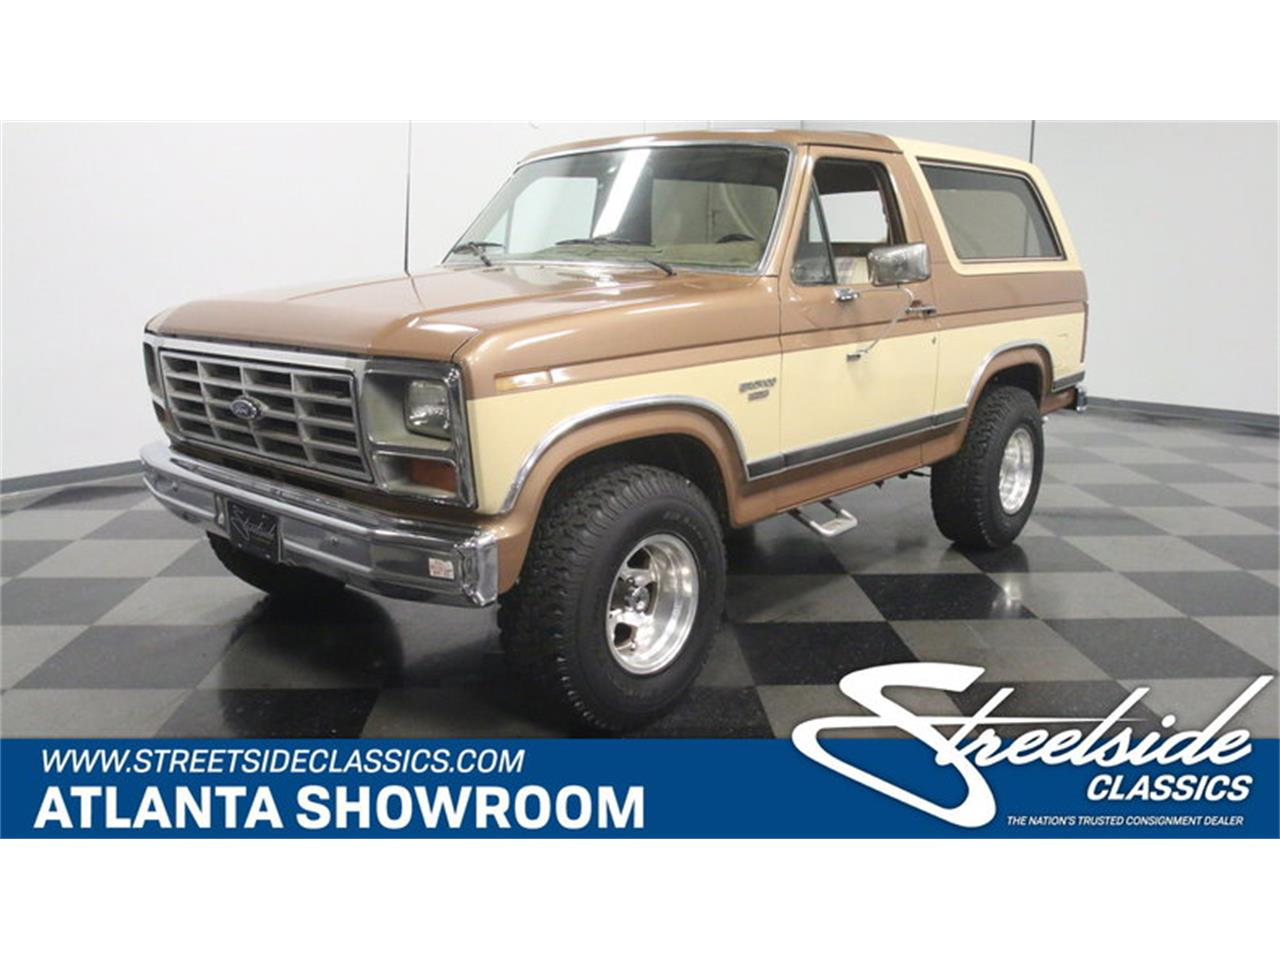 Large picture of 85 ford bronco 22995 00 ofbc